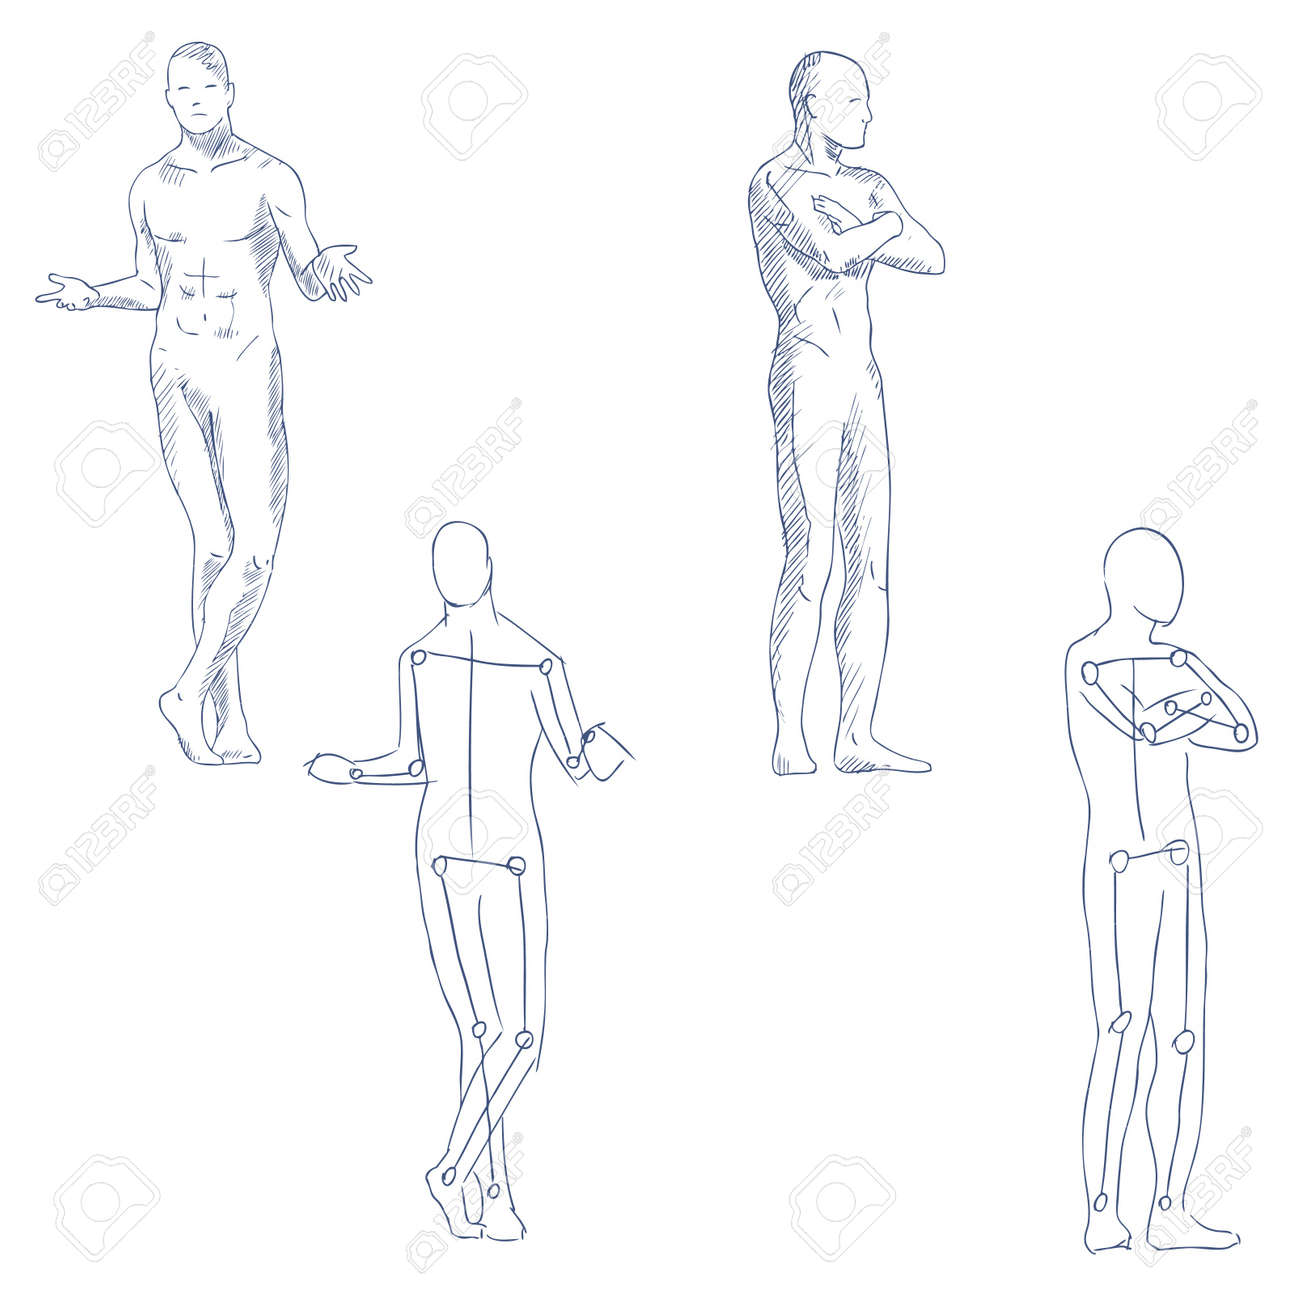 human in motion artistic sketch with shading vector Stock Vector - 10573779